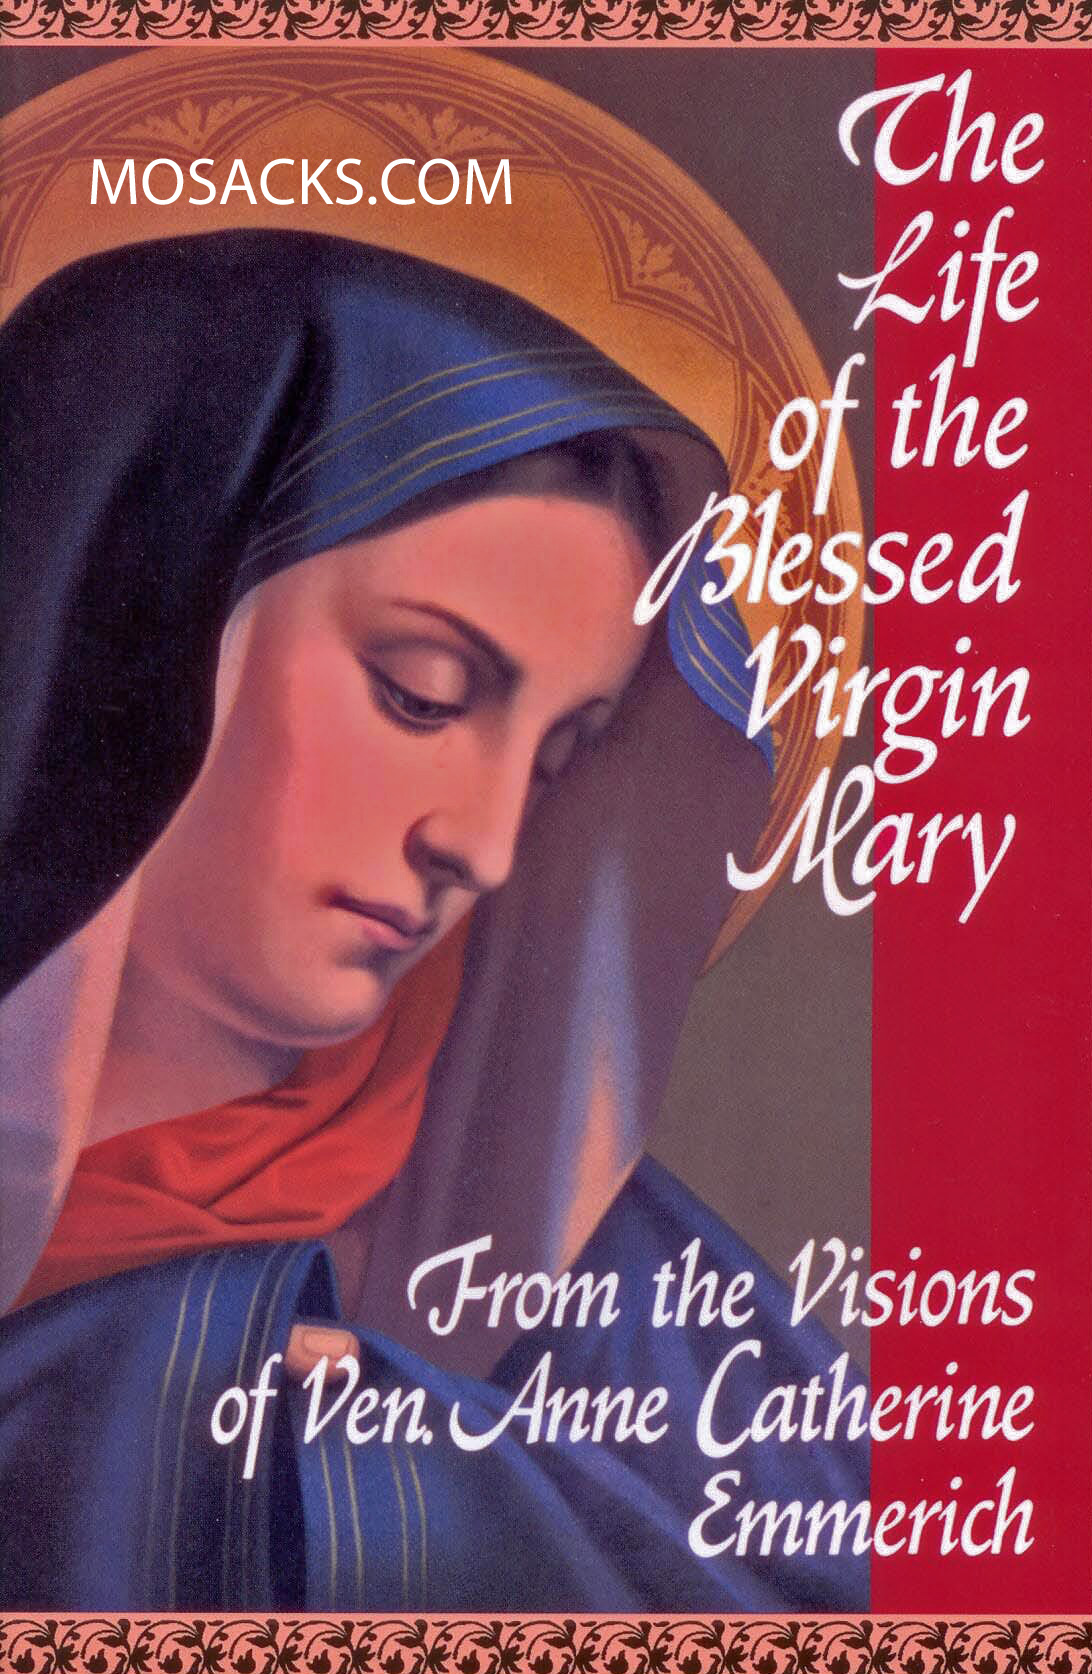 The Life of The Blessed Virgin Mary from Anne Catherine Emmerich